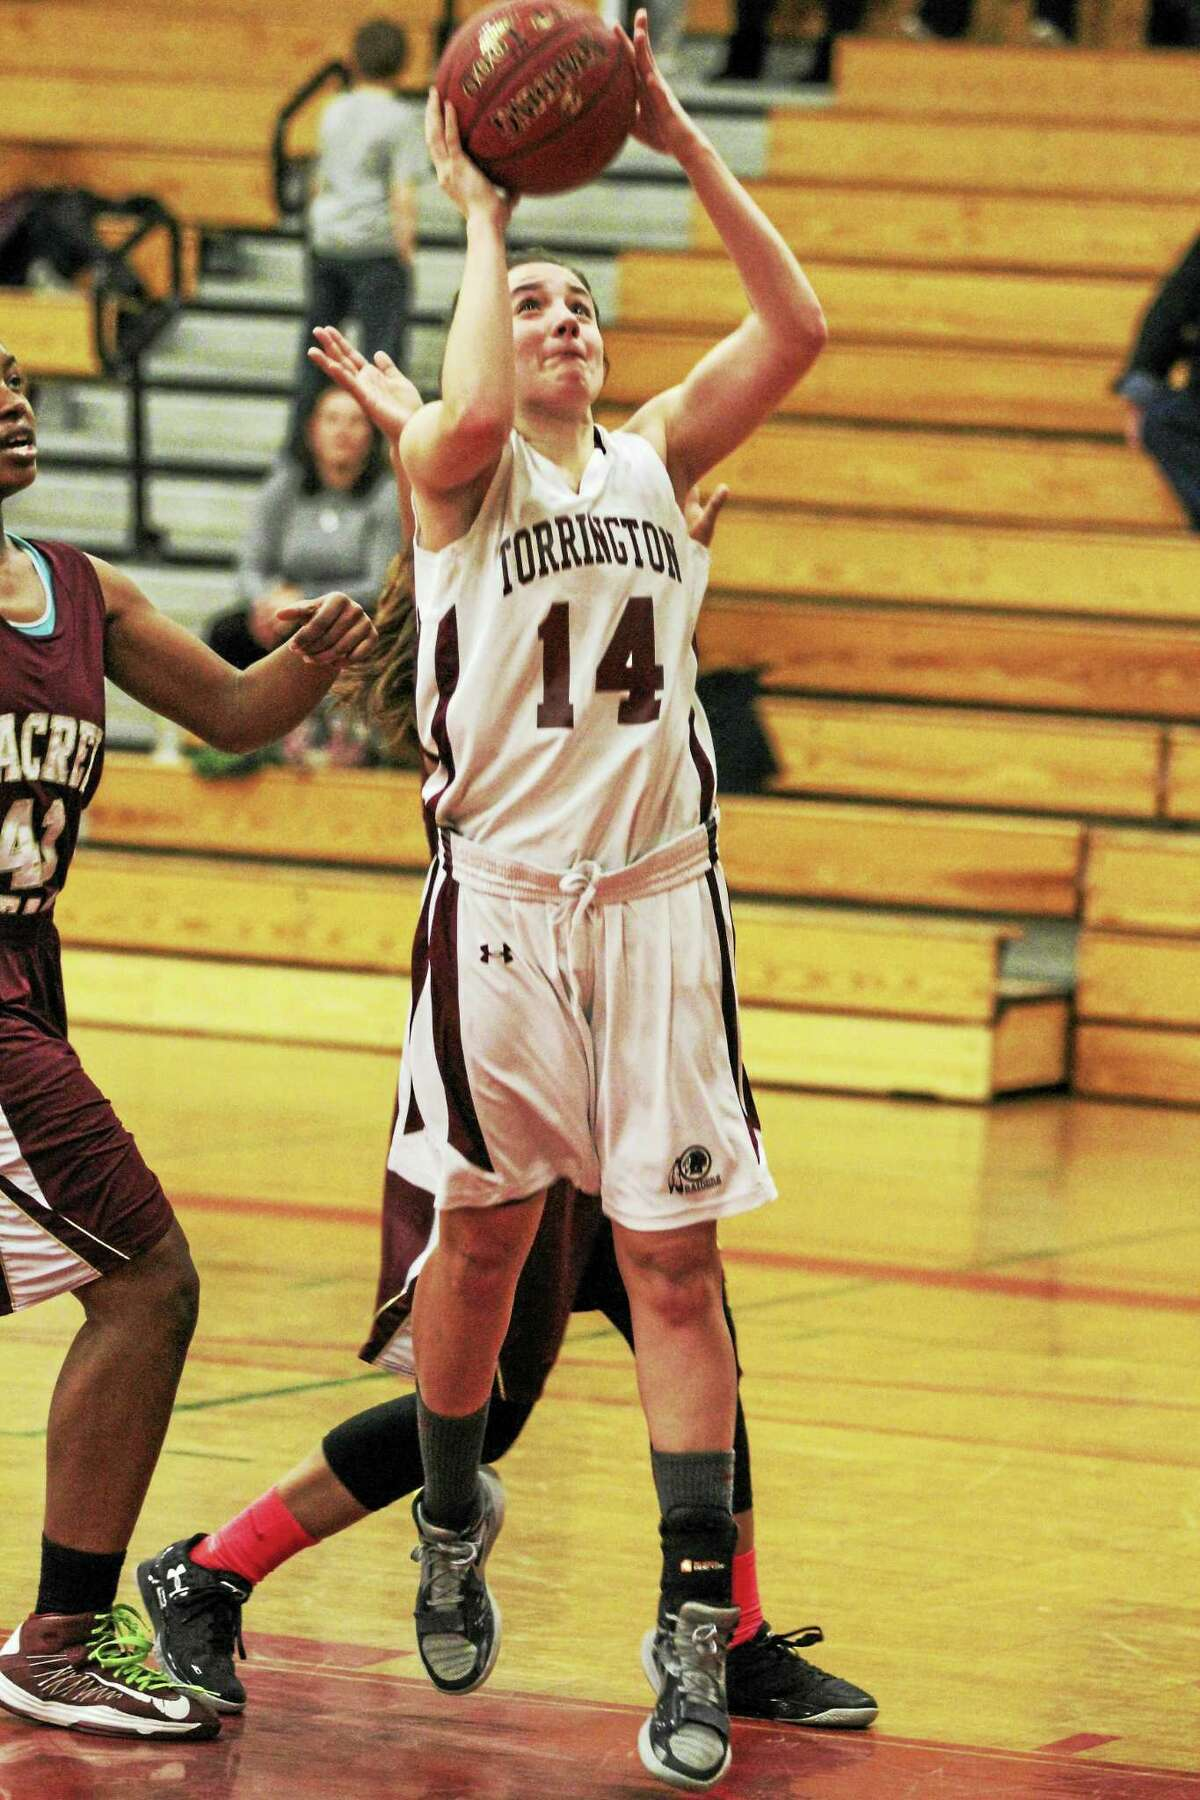 Torrington's Sidnee Kovall scored a game-high 16 points against Sacred Heart on Saturday.